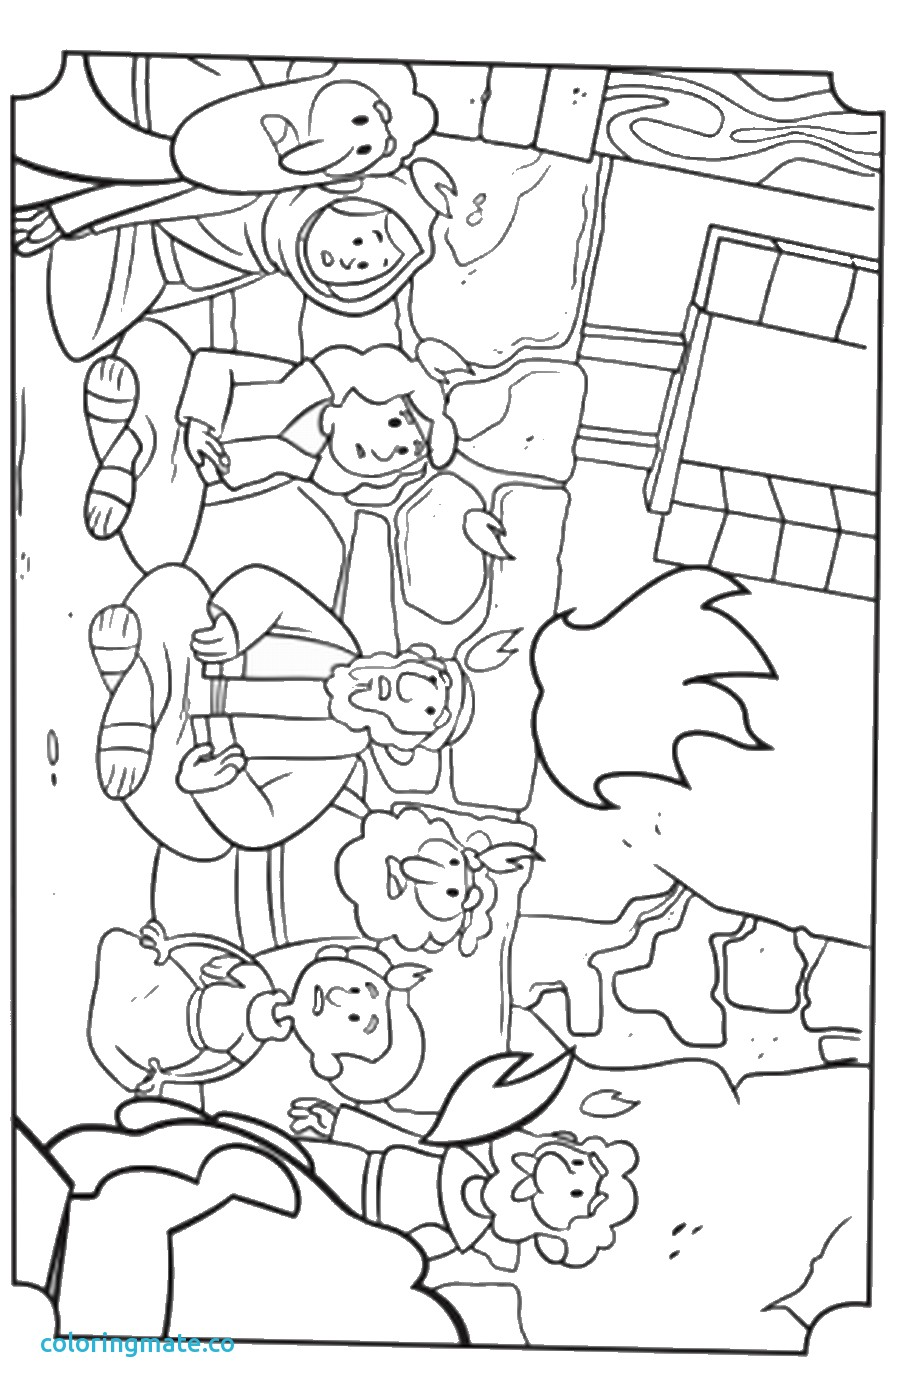 day of pentecost coloring sheet everyone is praise pentecost day coloring page everyone day of pentecost sheet coloring